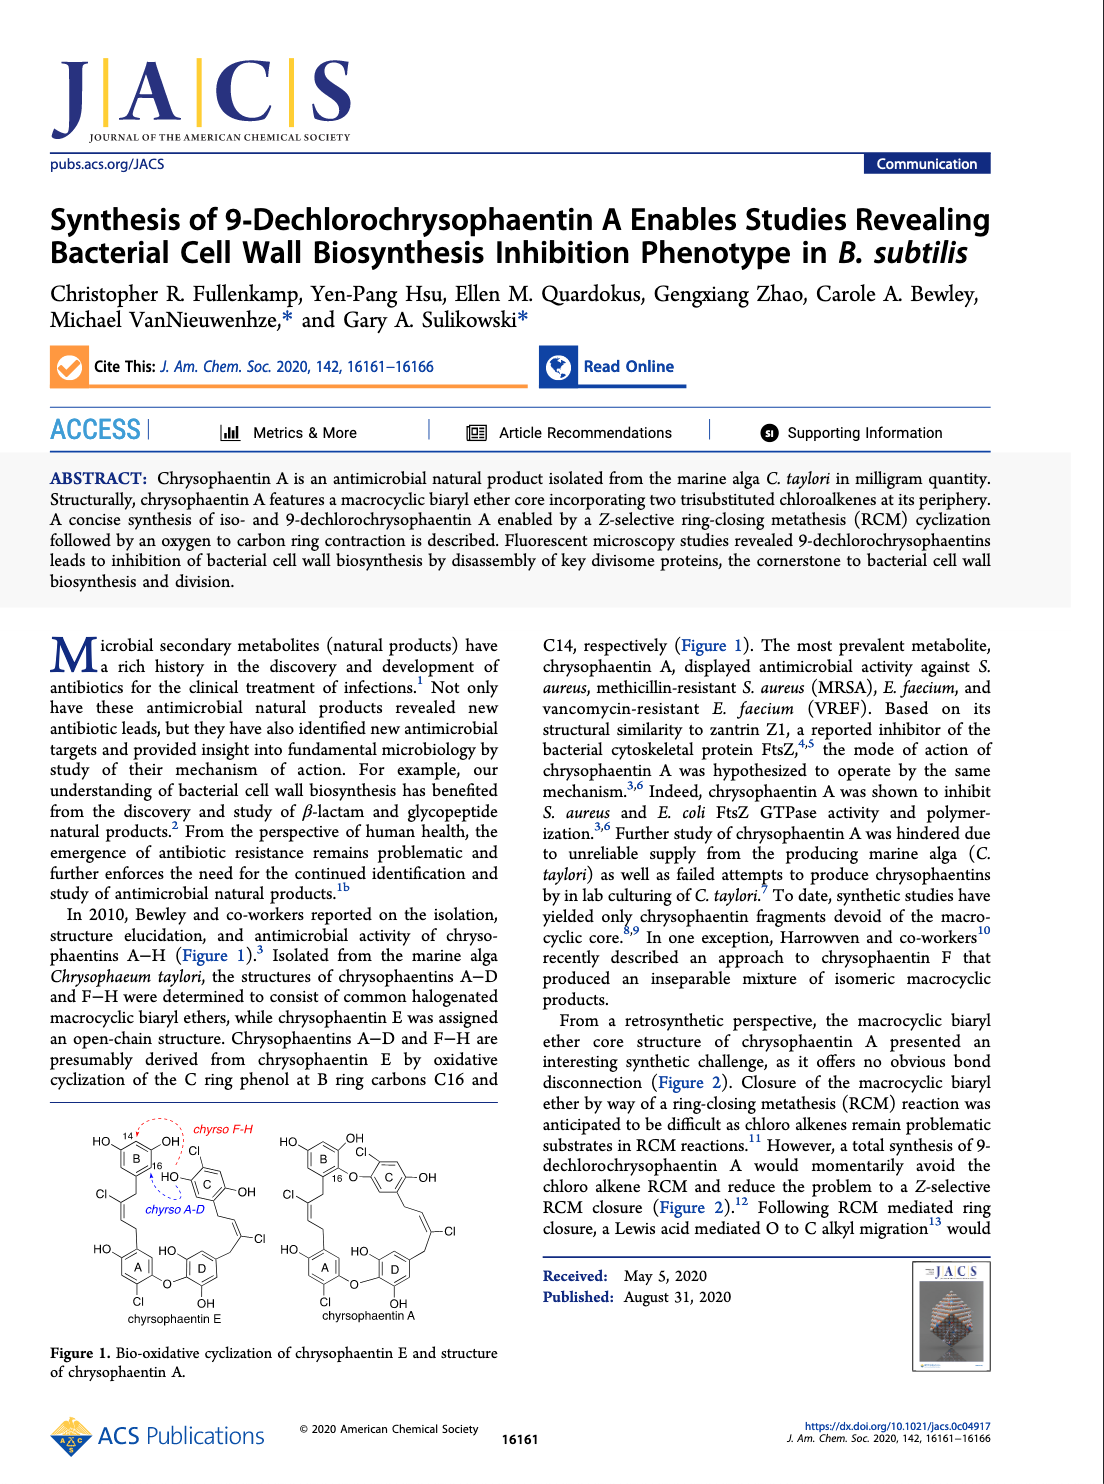 Synthesis of 9-Dechlorochrysophaentin A Enables Studies Revealing Bacterial Cell Wall Biosynthesis Inhibition Phenotype in B. subtilis